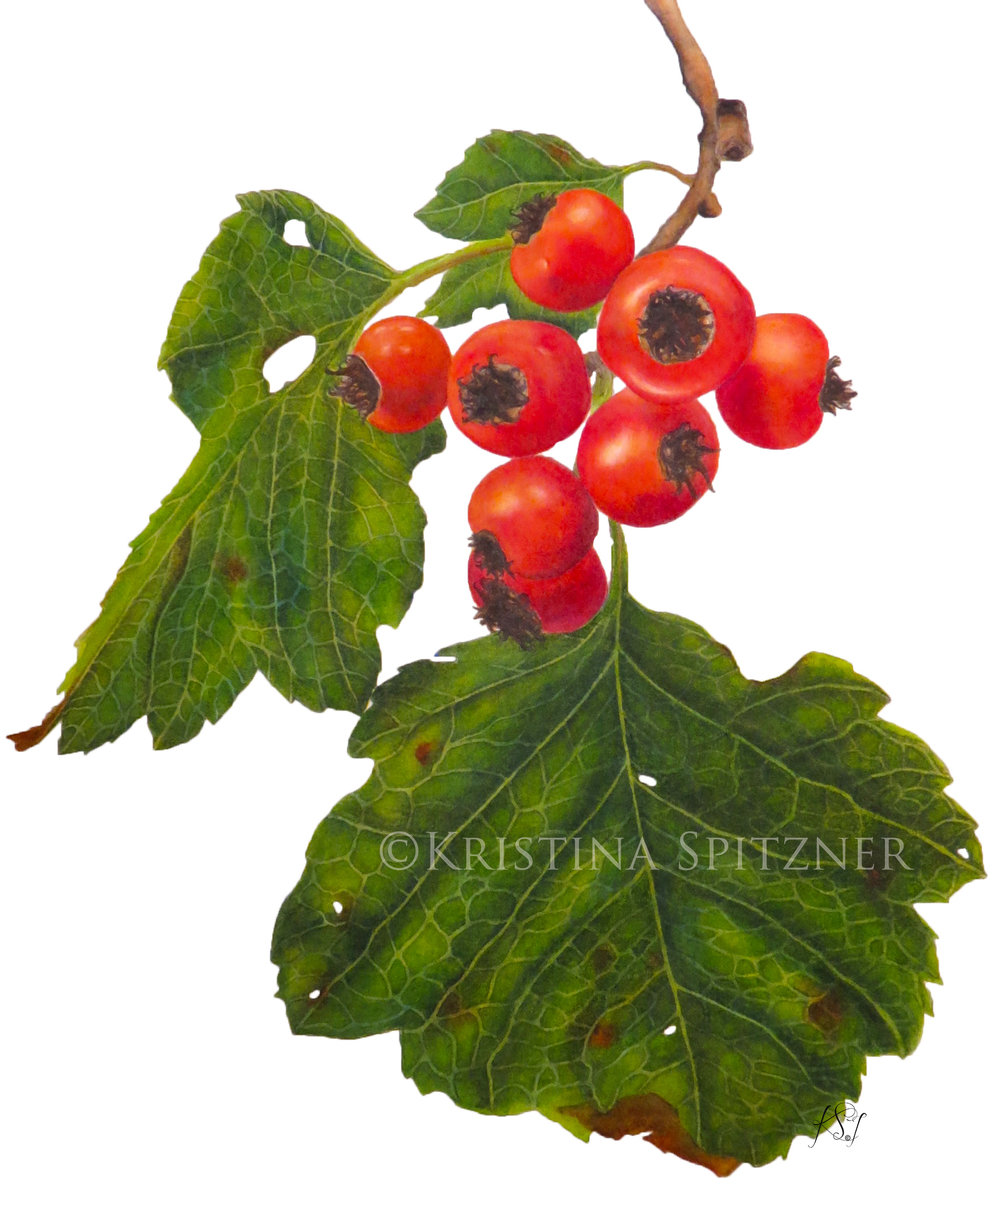 christmasberries2.jpg